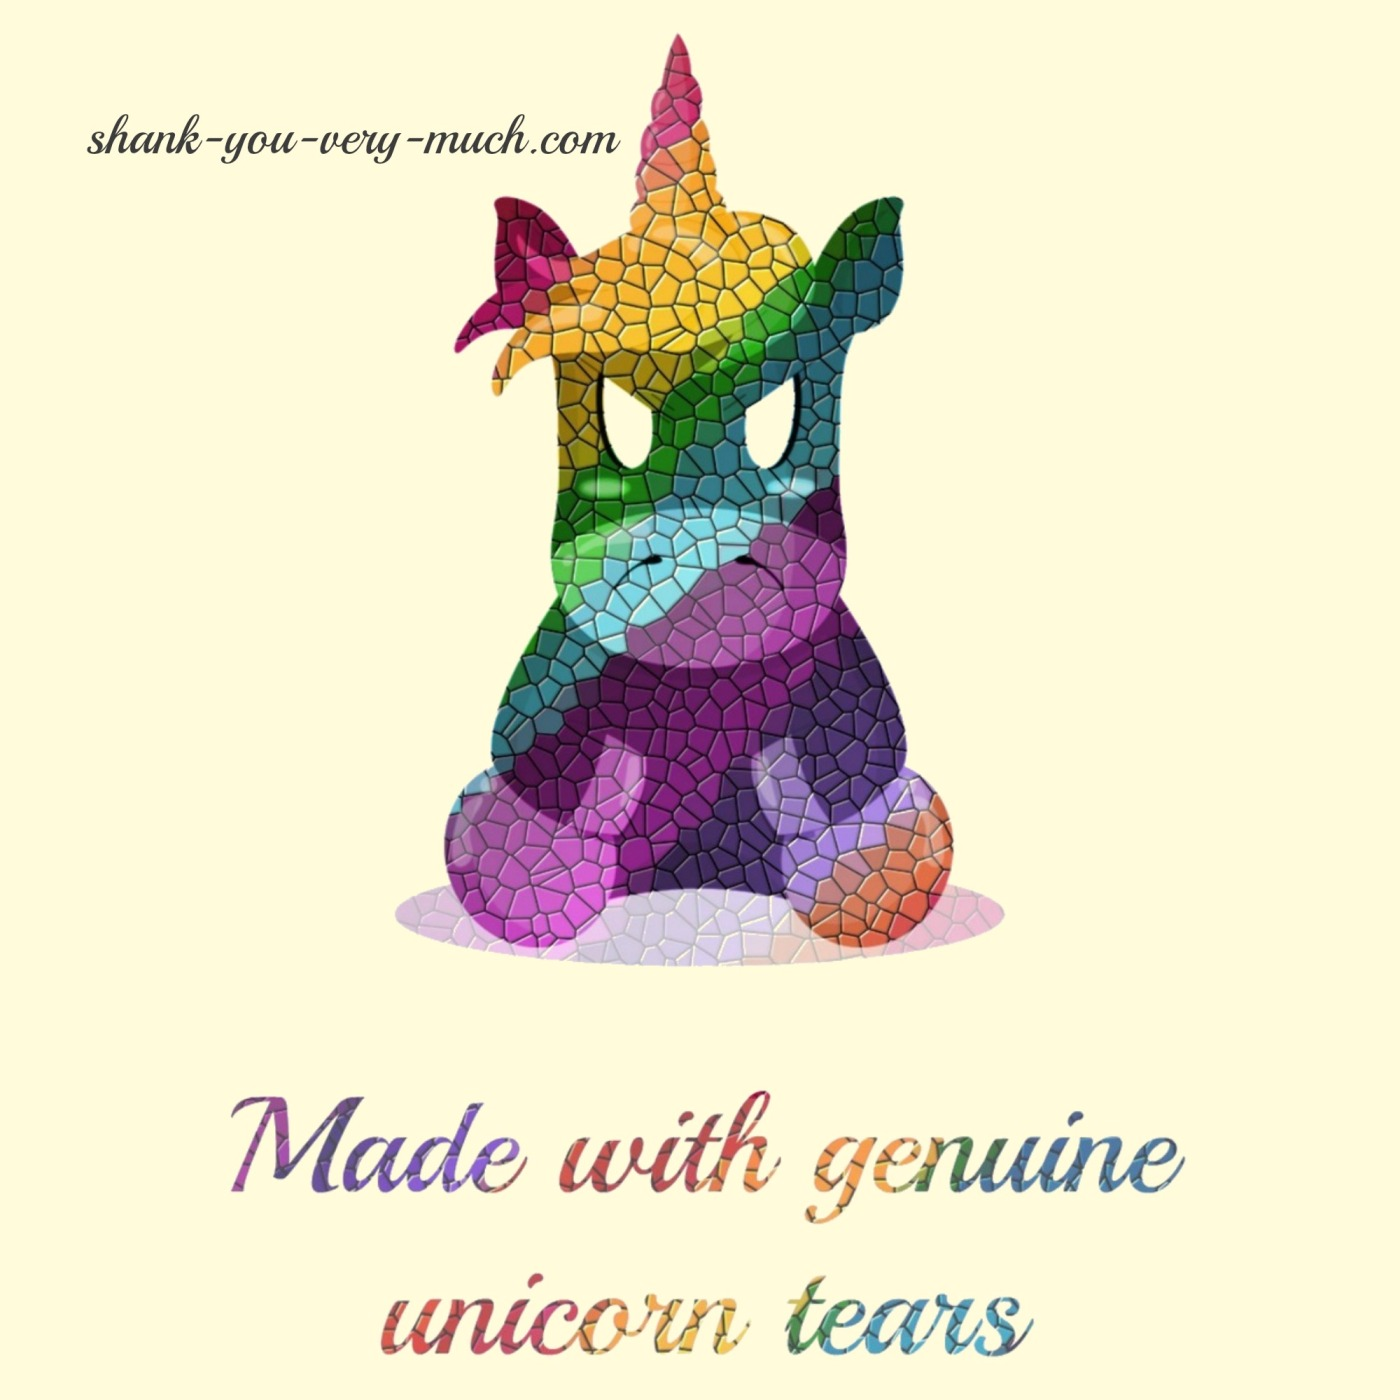 An angry, chubby, rainbow unicorn sitting down with the phrase 'made with genuine unicorn tears' under him.